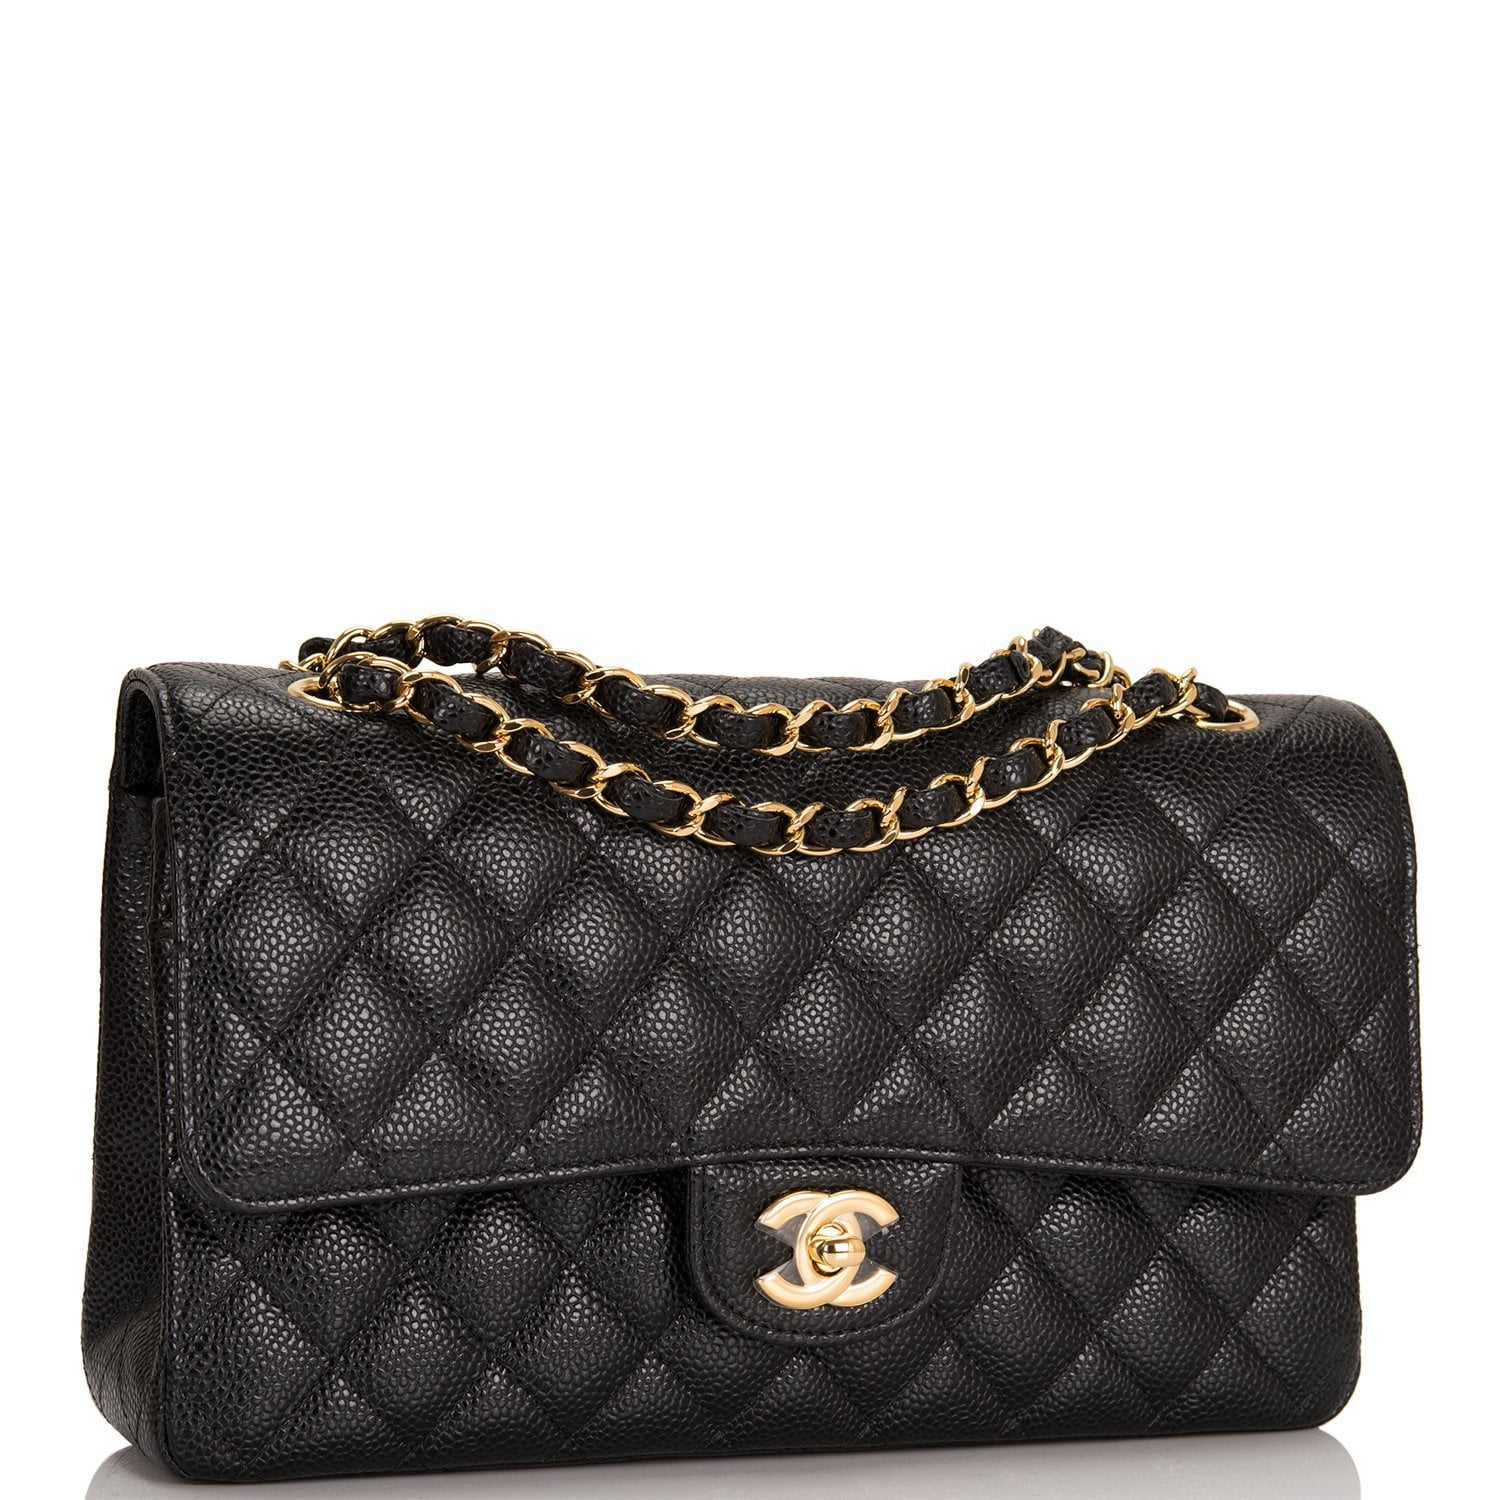 efde9dd885cfcd Chanel Black Quilted Caviar Medium Classic Double Flap Bag – Madison Avenue  Couture